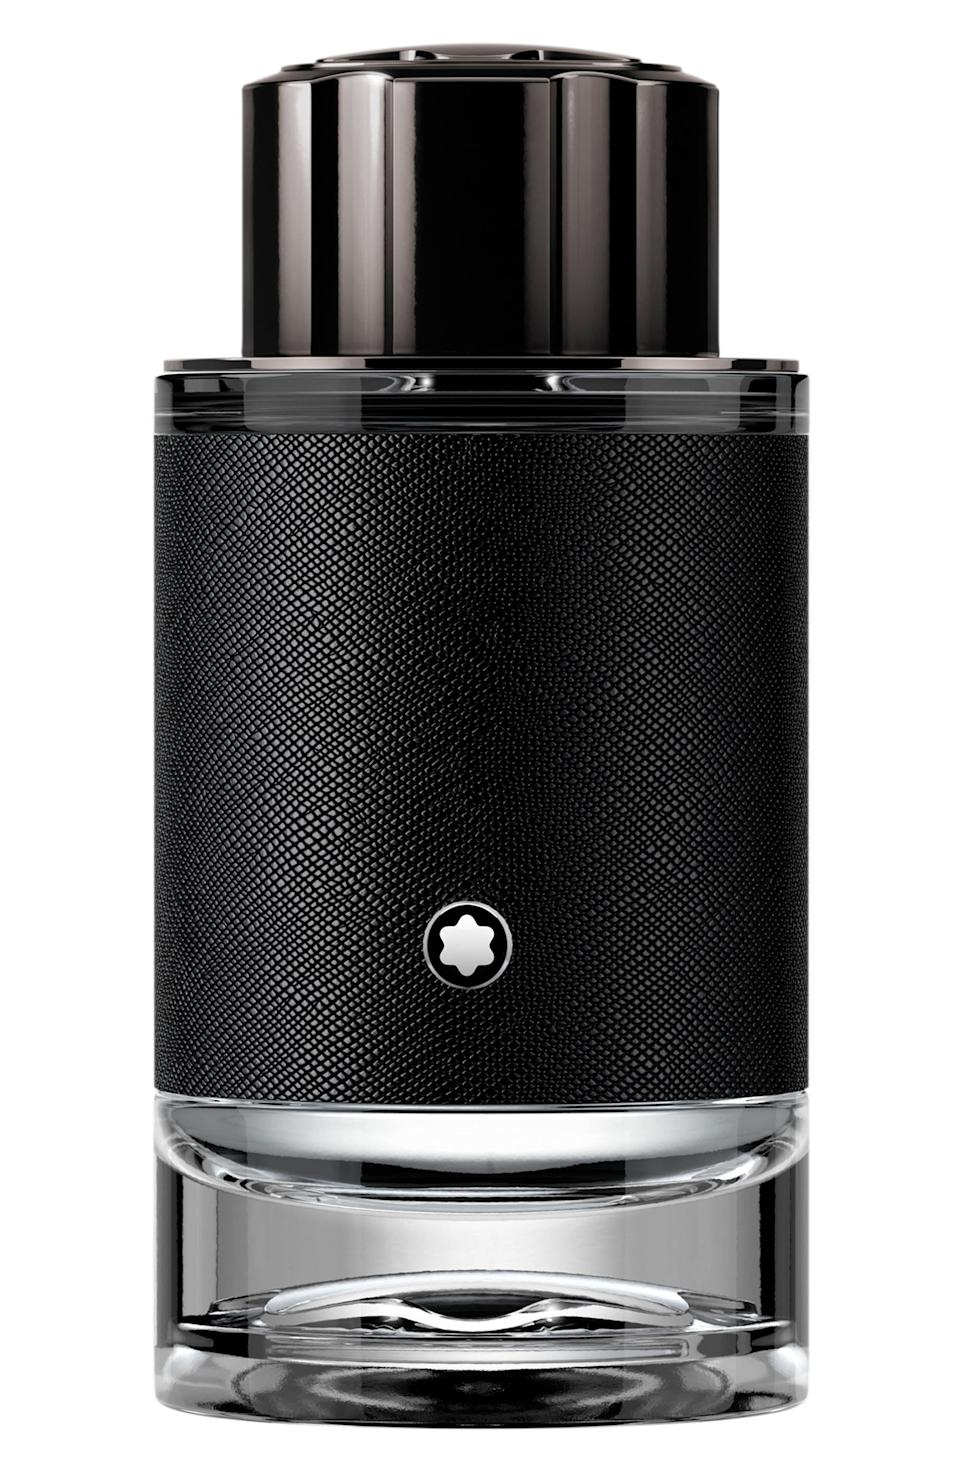 """<p><strong>MONTBLANC</strong></p><p>nordstrom.com</p><p><strong>$98.00</strong></p><p><a href=""""https://go.redirectingat.com?id=74968X1596630&url=https%3A%2F%2Fshop.nordstrom.com%2Fs%2Fmontblanc-explorer-eau-de-parfum%2F5365258&sref=https%3A%2F%2Fwww.countryliving.com%2Fshopping%2Fg32451842%2Ffather-in-law-gifts%2F"""" rel=""""nofollow noopener"""" target=""""_blank"""" data-ylk=""""slk:Shop Now"""" class=""""link rapid-noclick-resp"""">Shop Now</a></p><p>Set your father-in-law up with a new signature scent like this woody, aromatic, and leathery eau de parfum from Montblanc that includes notes of begamot, vetiver, and patchouli.</p>"""